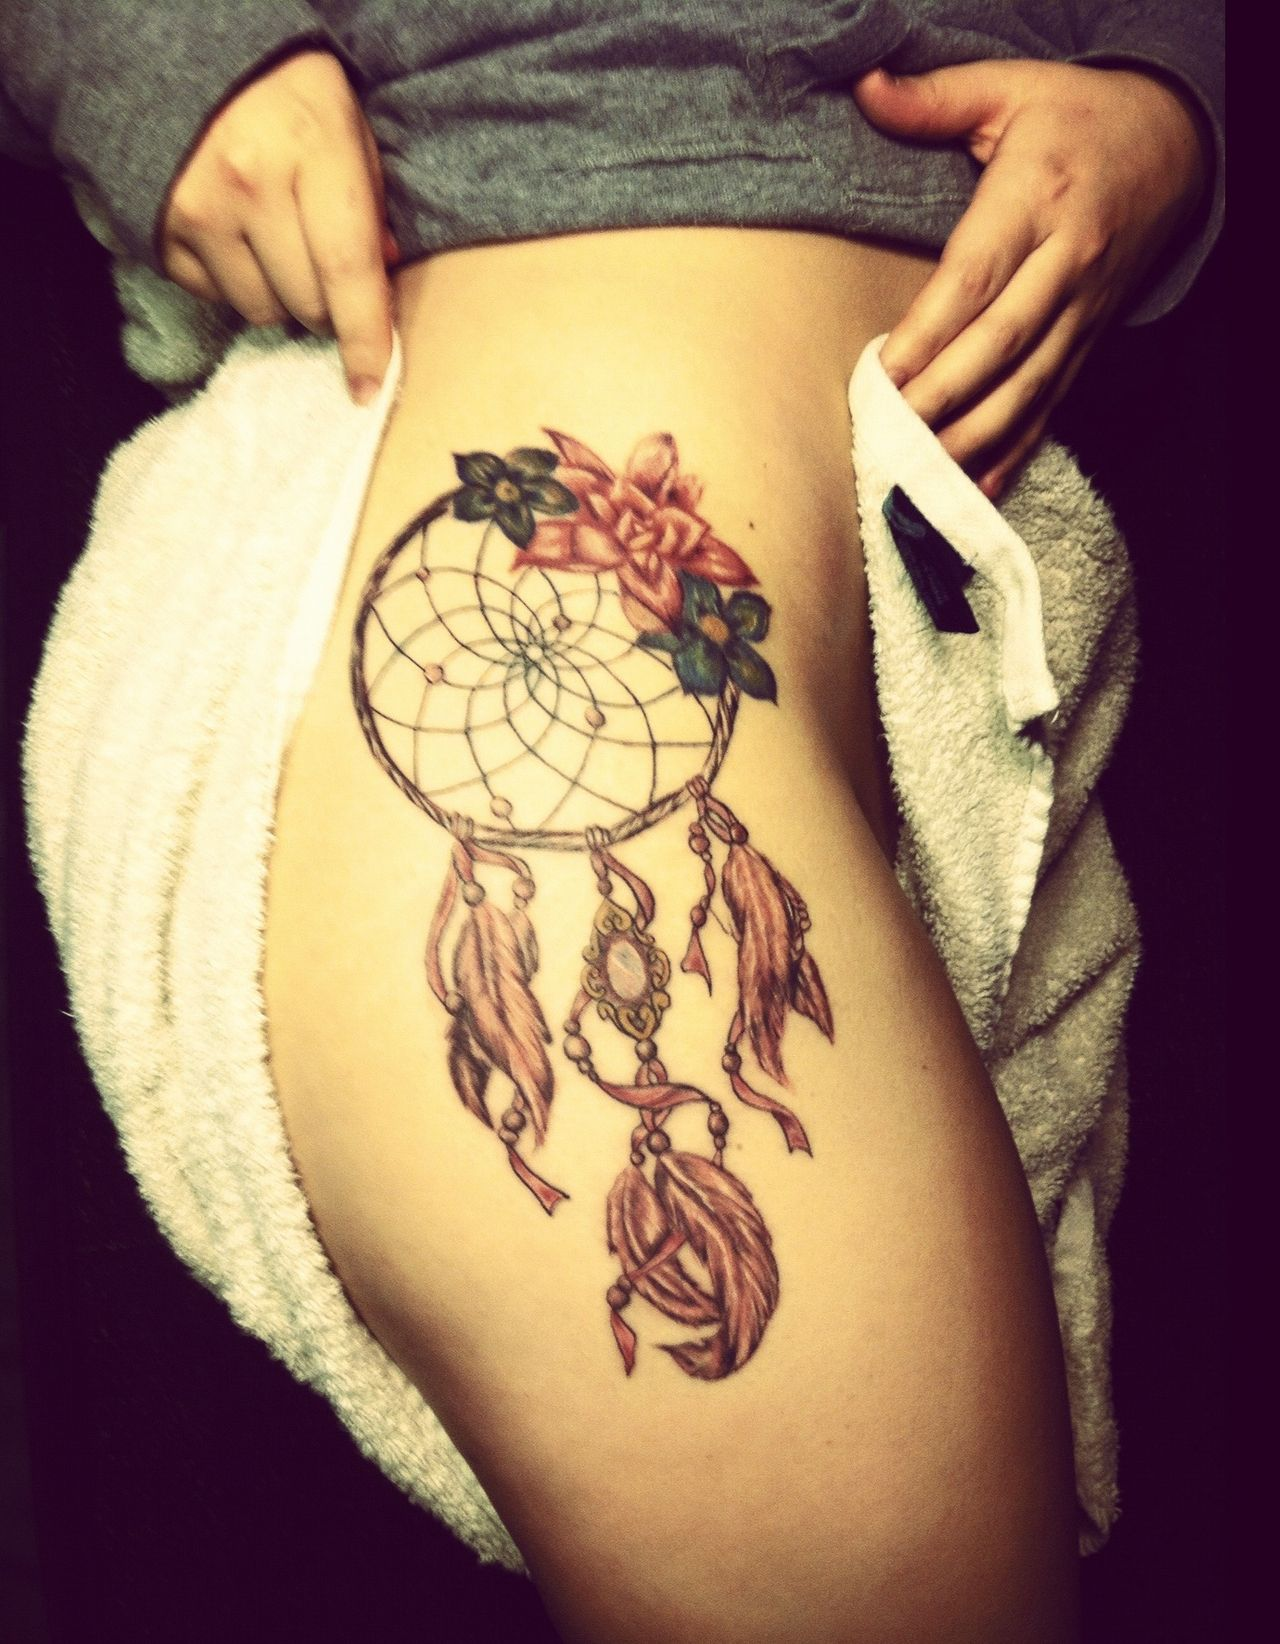 Dream Catcher Tattoo On Thigh Beauteous I Love This Dream Catcher Tattoo I Have One On My Shoulder Think I Decorating Design